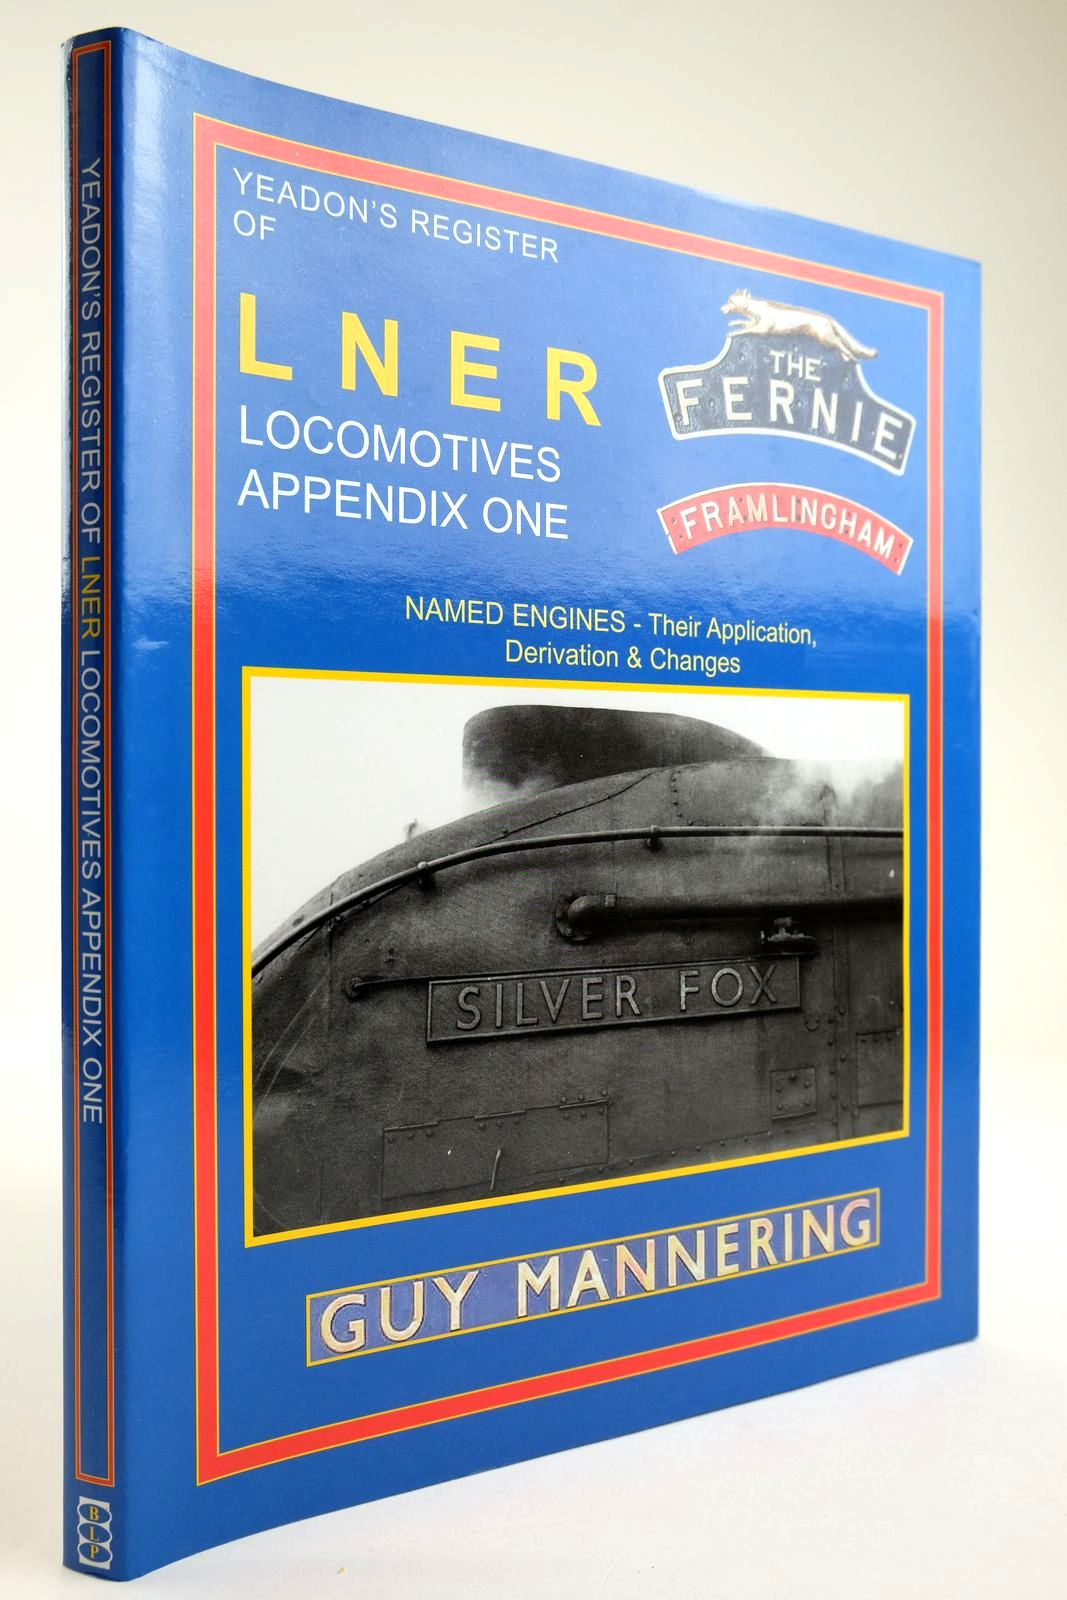 Photo of YEADONS REGISTER OF LNER LOCOMOTIVES APPENDIX ONE- Stock Number: 2133579